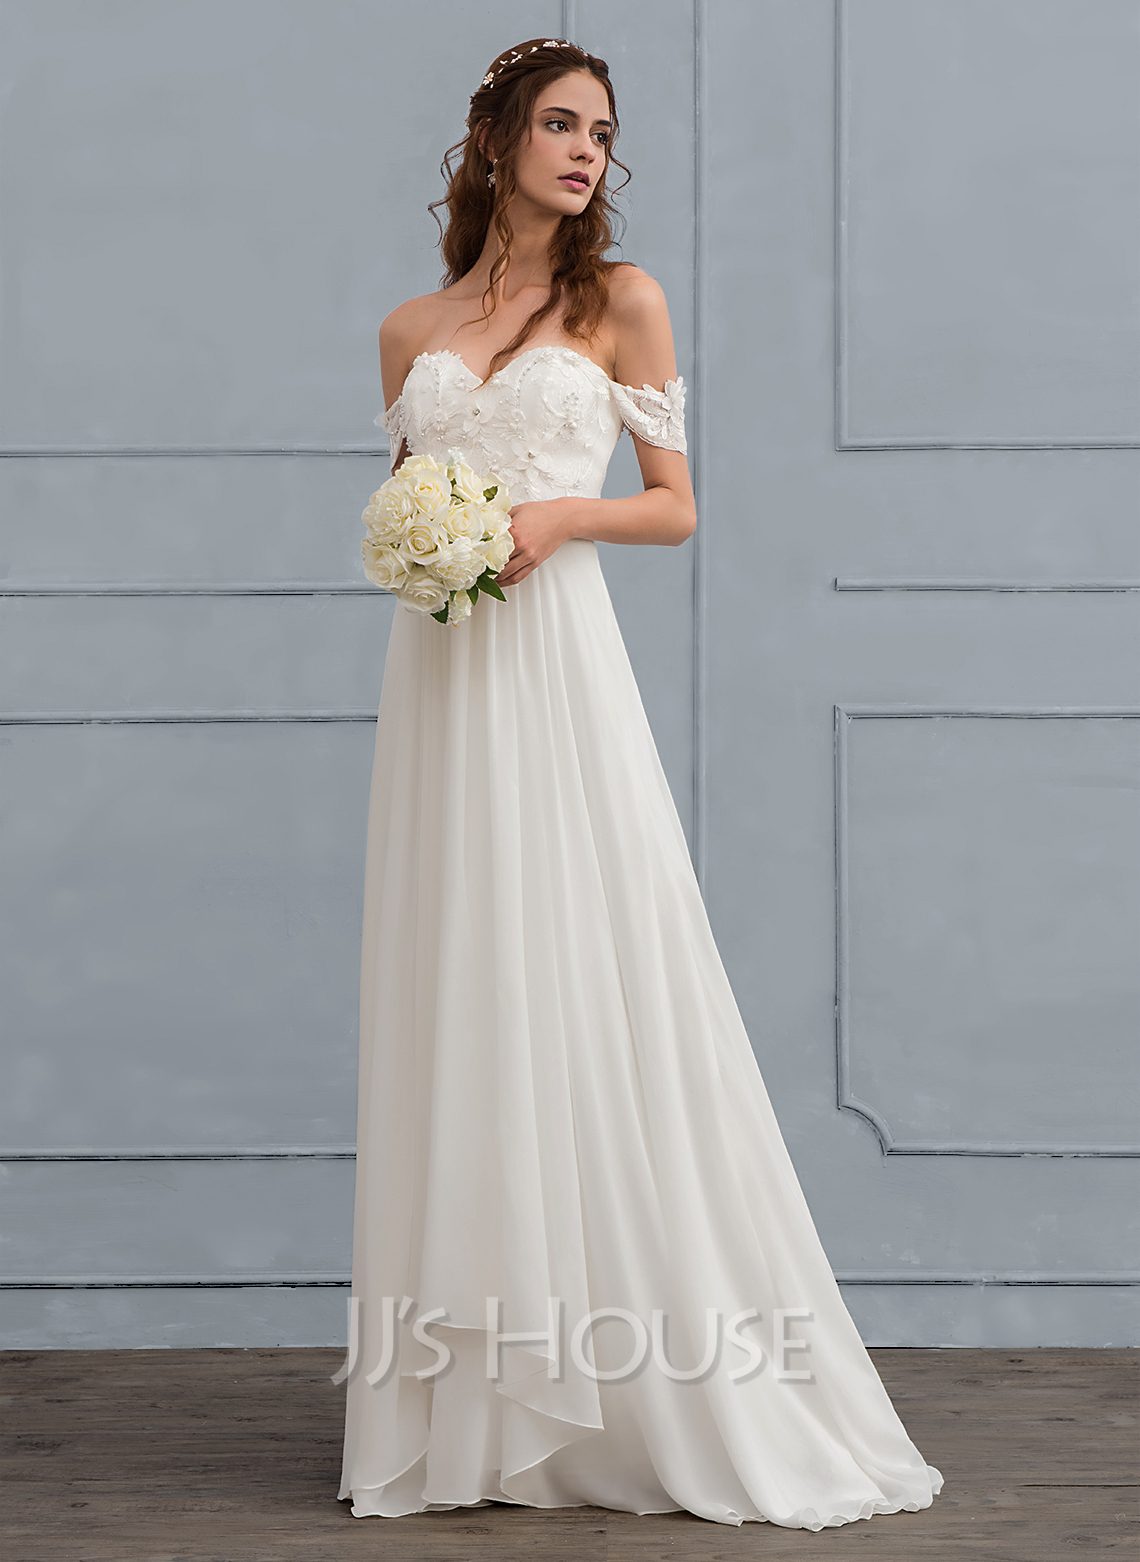 A Line Wedding Dresses.A Line Princess Off The Shoulder Sweep Train Chiffon Wedding Dress With Lace Beading Flower S 002118437